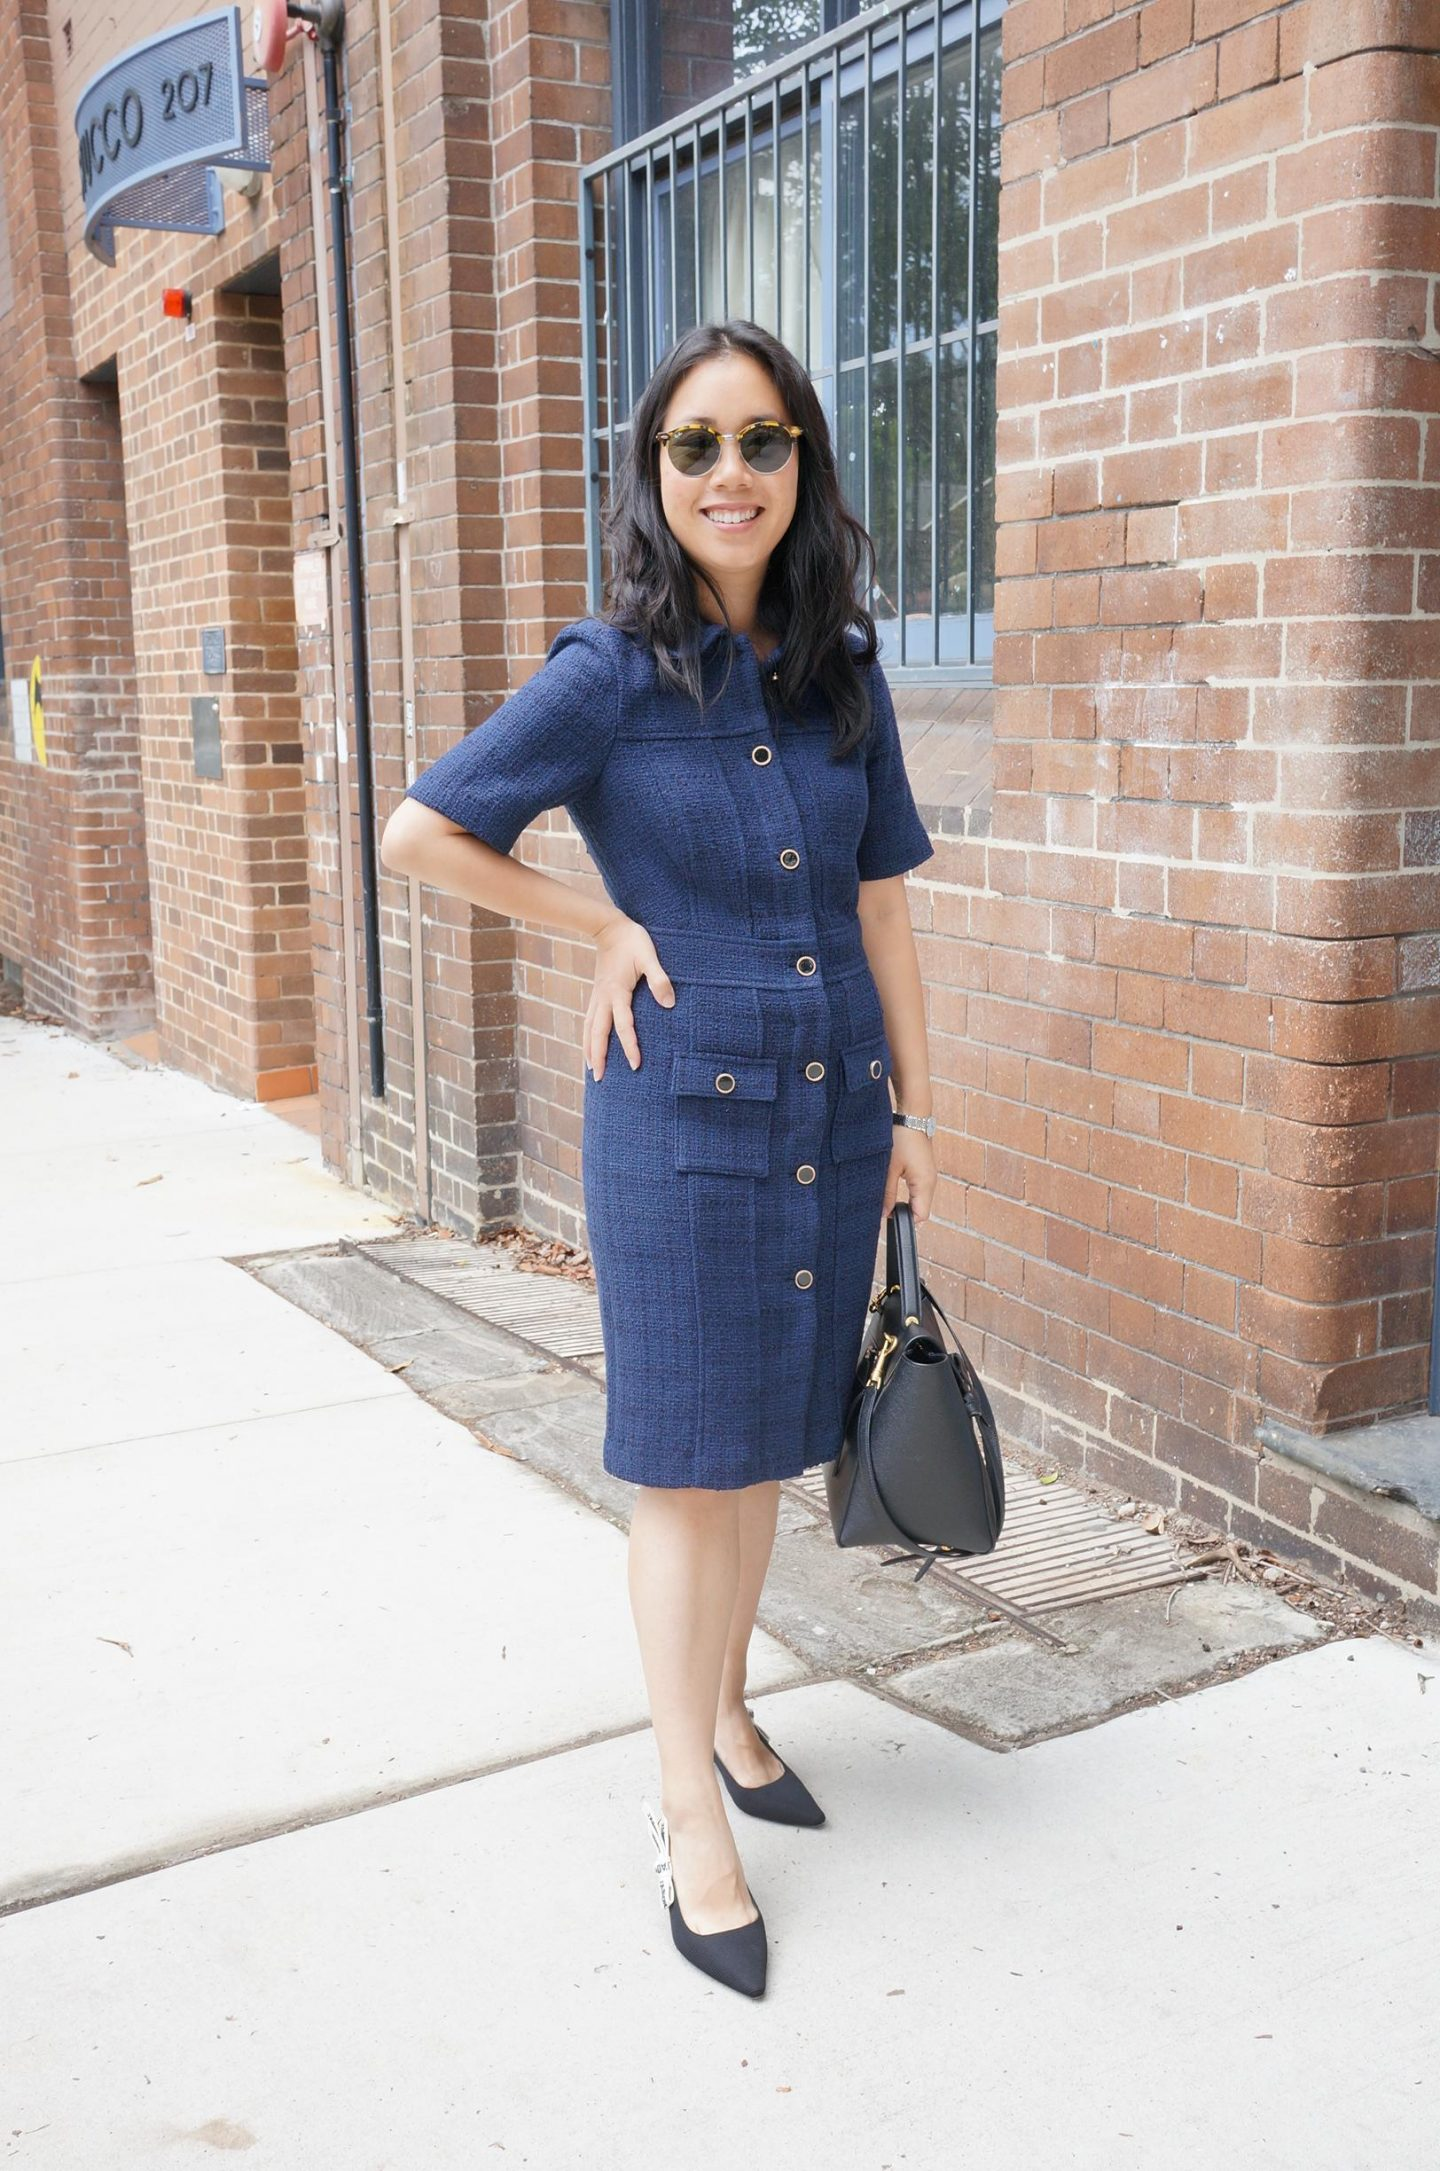 dupe for chanel navy tweed dress in blog post of marks spencer workwear